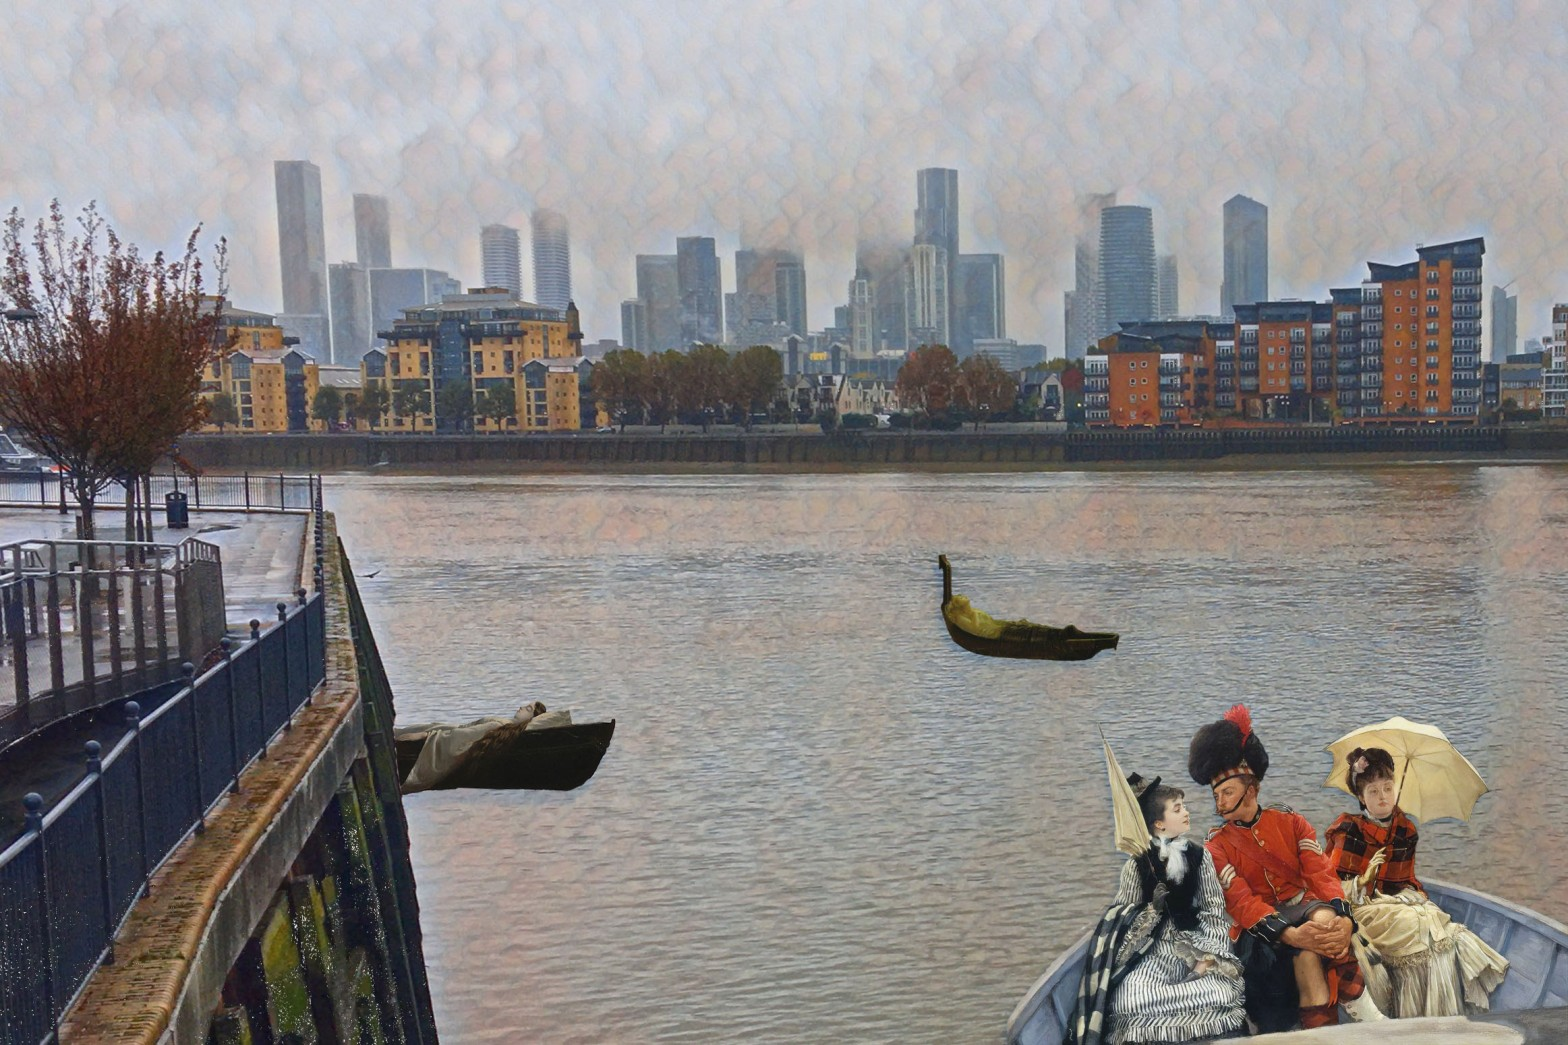 "Photograph of the Thames, Isle of Dogs, and Canary Wharf taken from the Deptford Creek Bridge that incorporates figures from James Tissot's ""Portsmouth Dockyard"" (1877), John Atkinson Grimshaw's ""The Lady of Shalott"" (c. 1875), and Walter Crane's ""The Lady of Shalott"" (1862)"